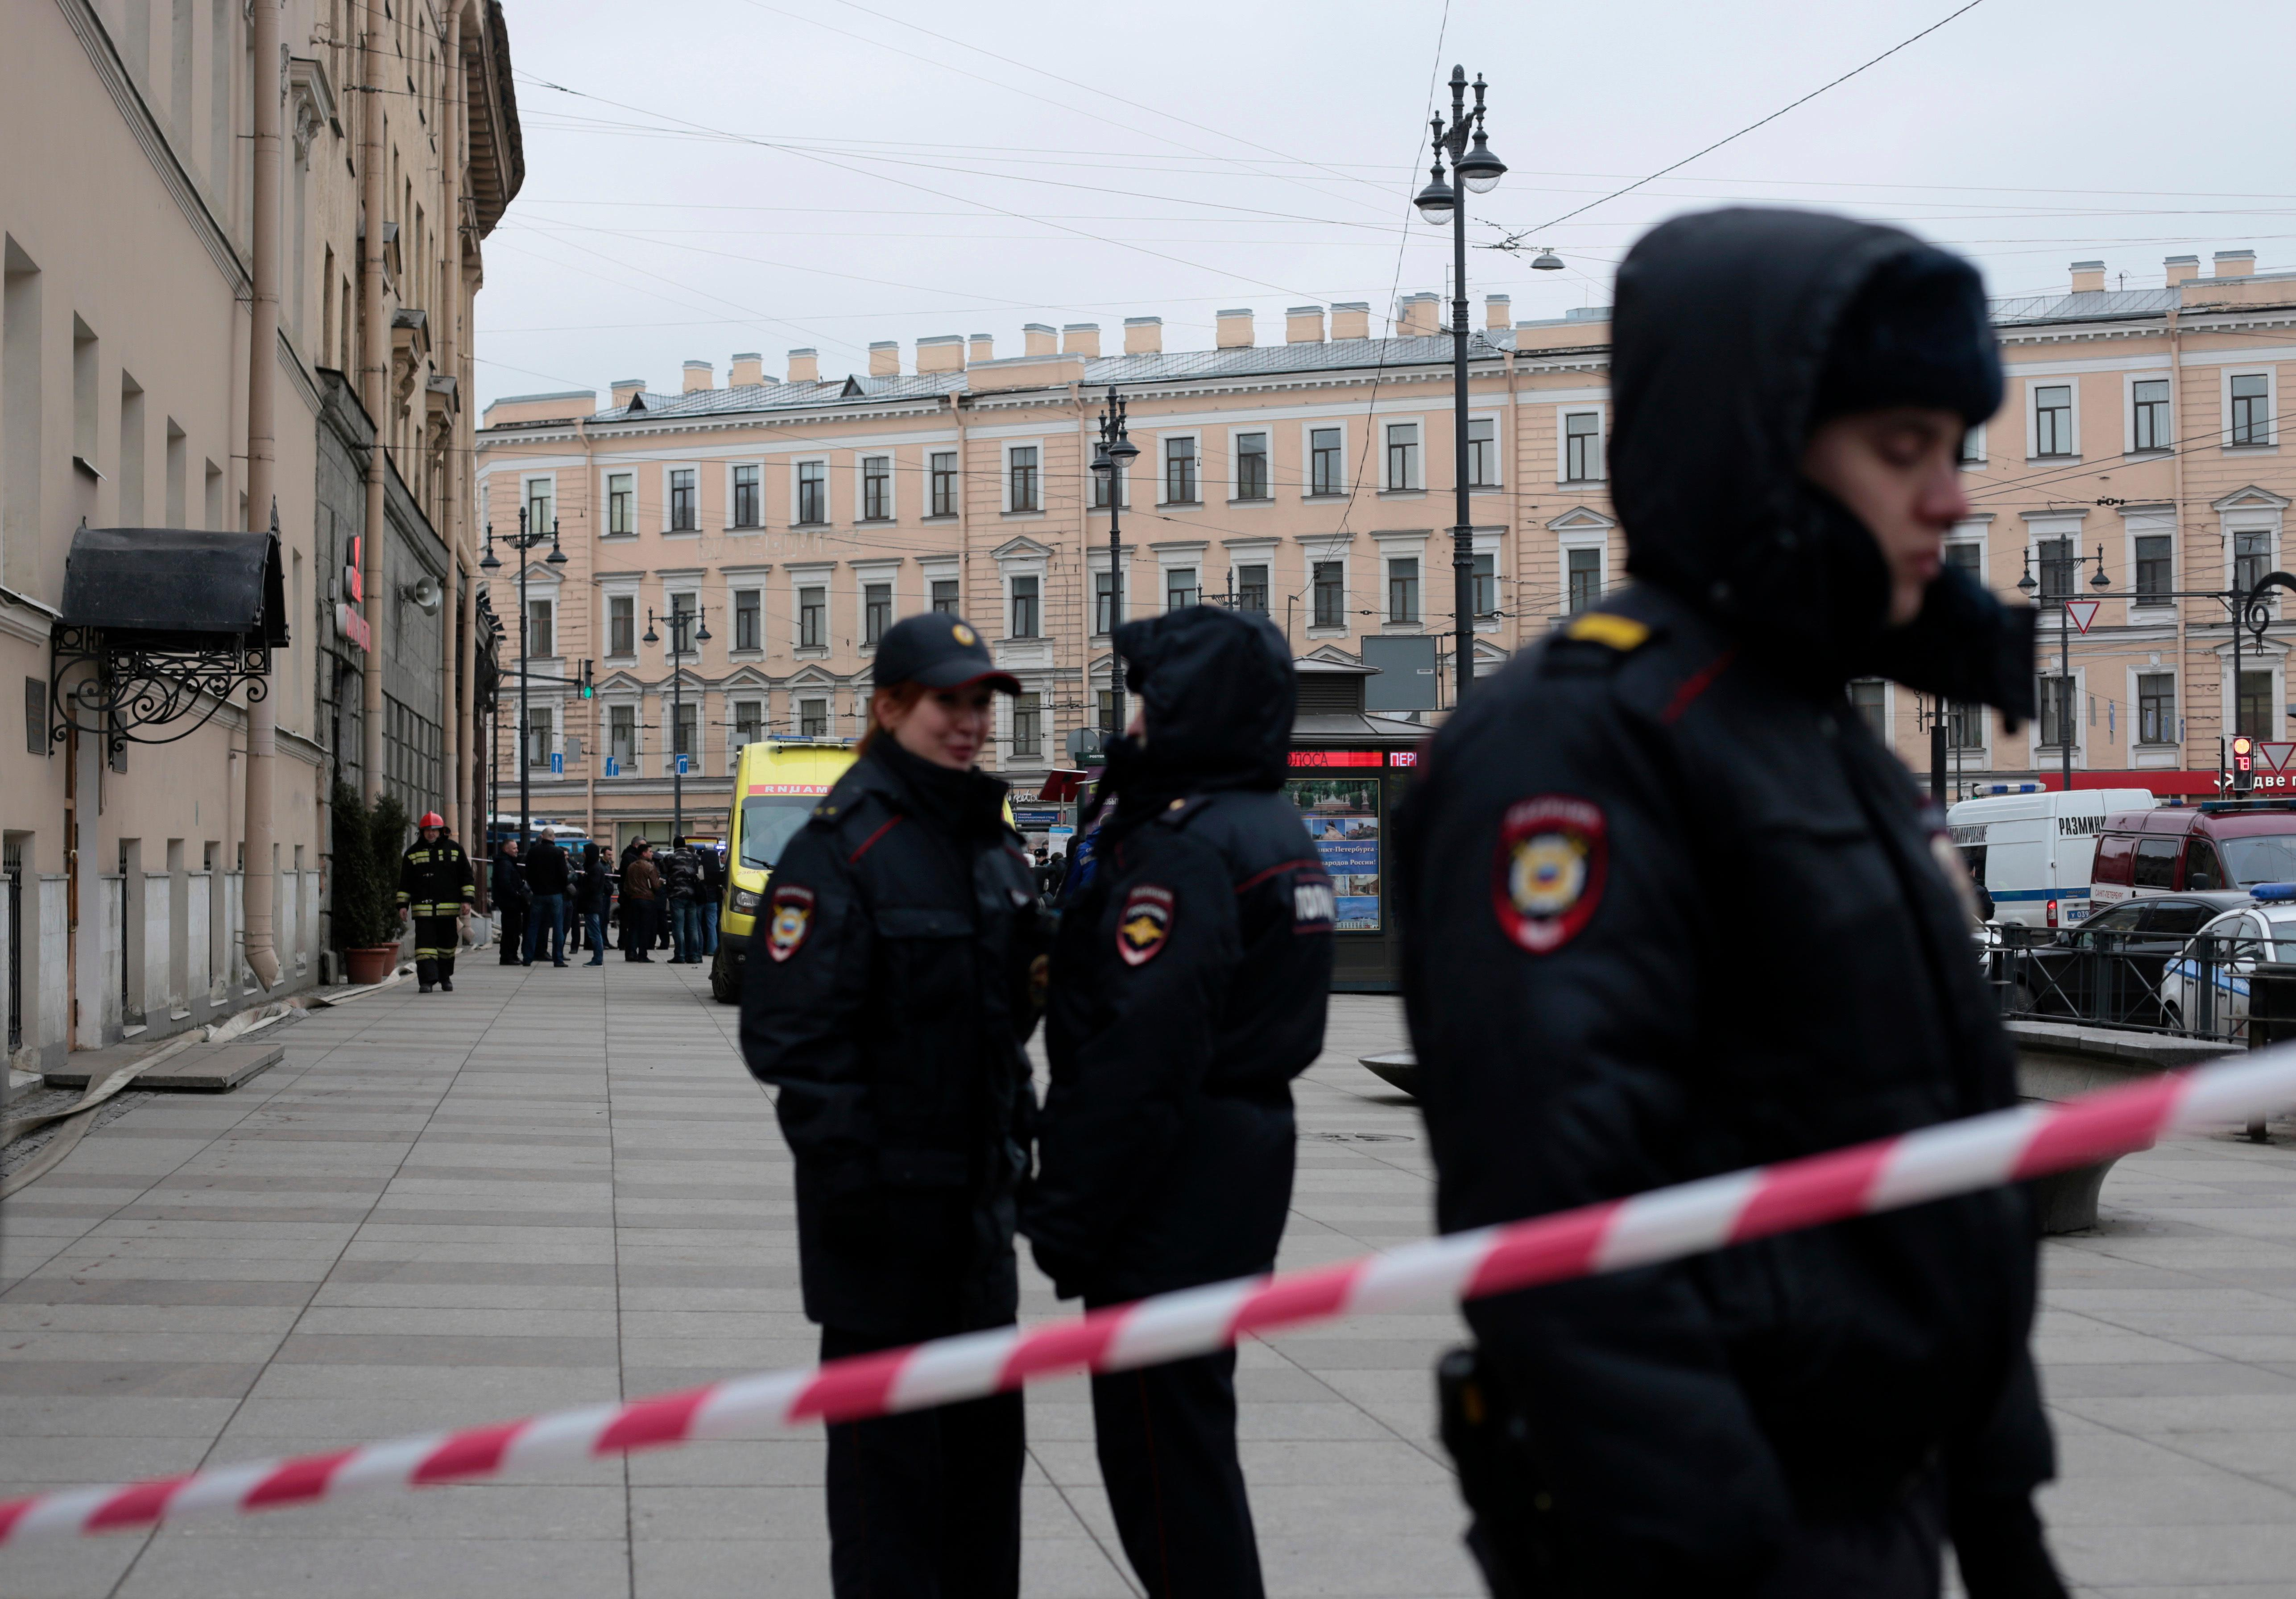 Russian police officers stand guard in a street after an explosion in St. Petersburg's subway, Russia, Monday, April 3, 2017. (AP Photo/Evgenii Kurskov)